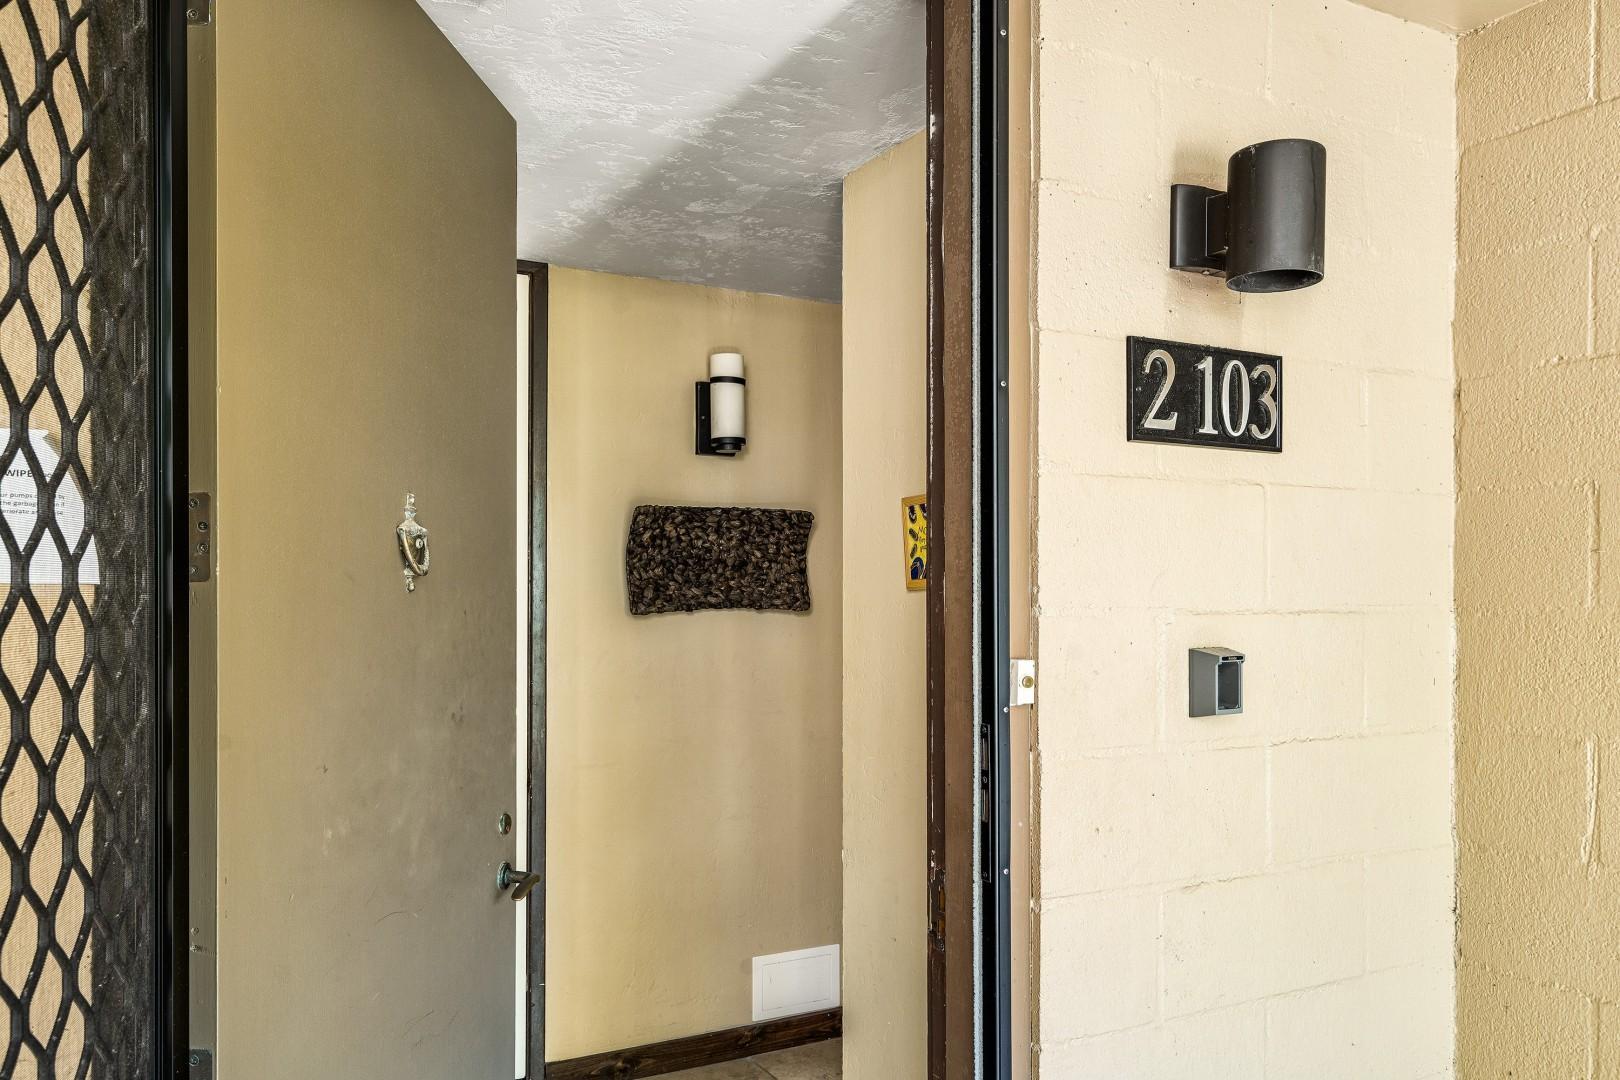 Entry to the condo on the ground floor